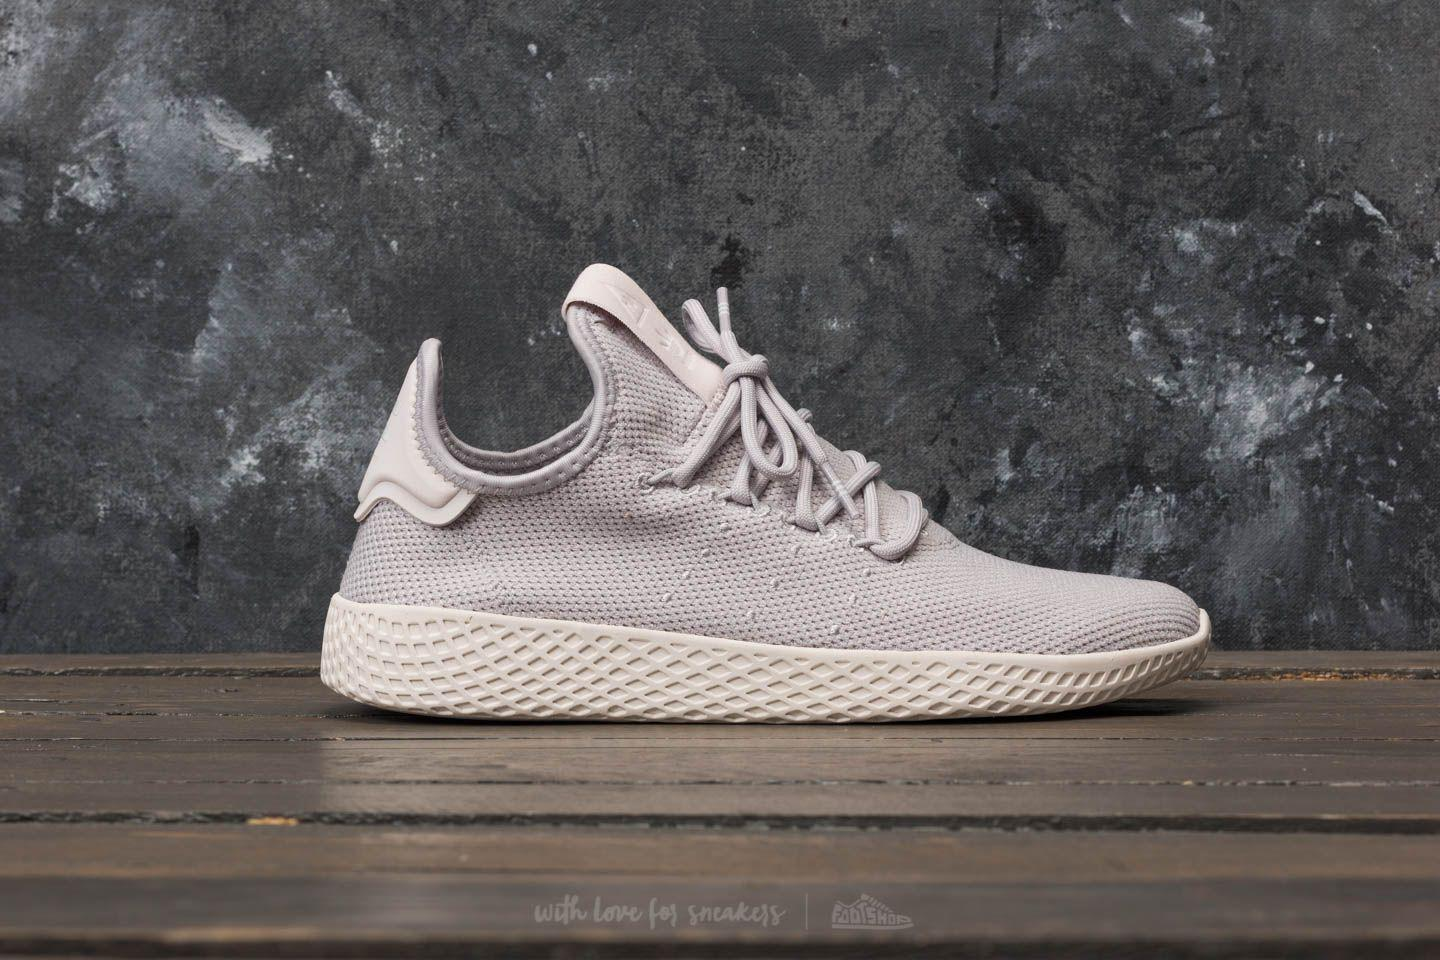 871537110ec39 Lyst - adidas Originals Adidas Pharrell Williams Tennis Hu W Lgh ...